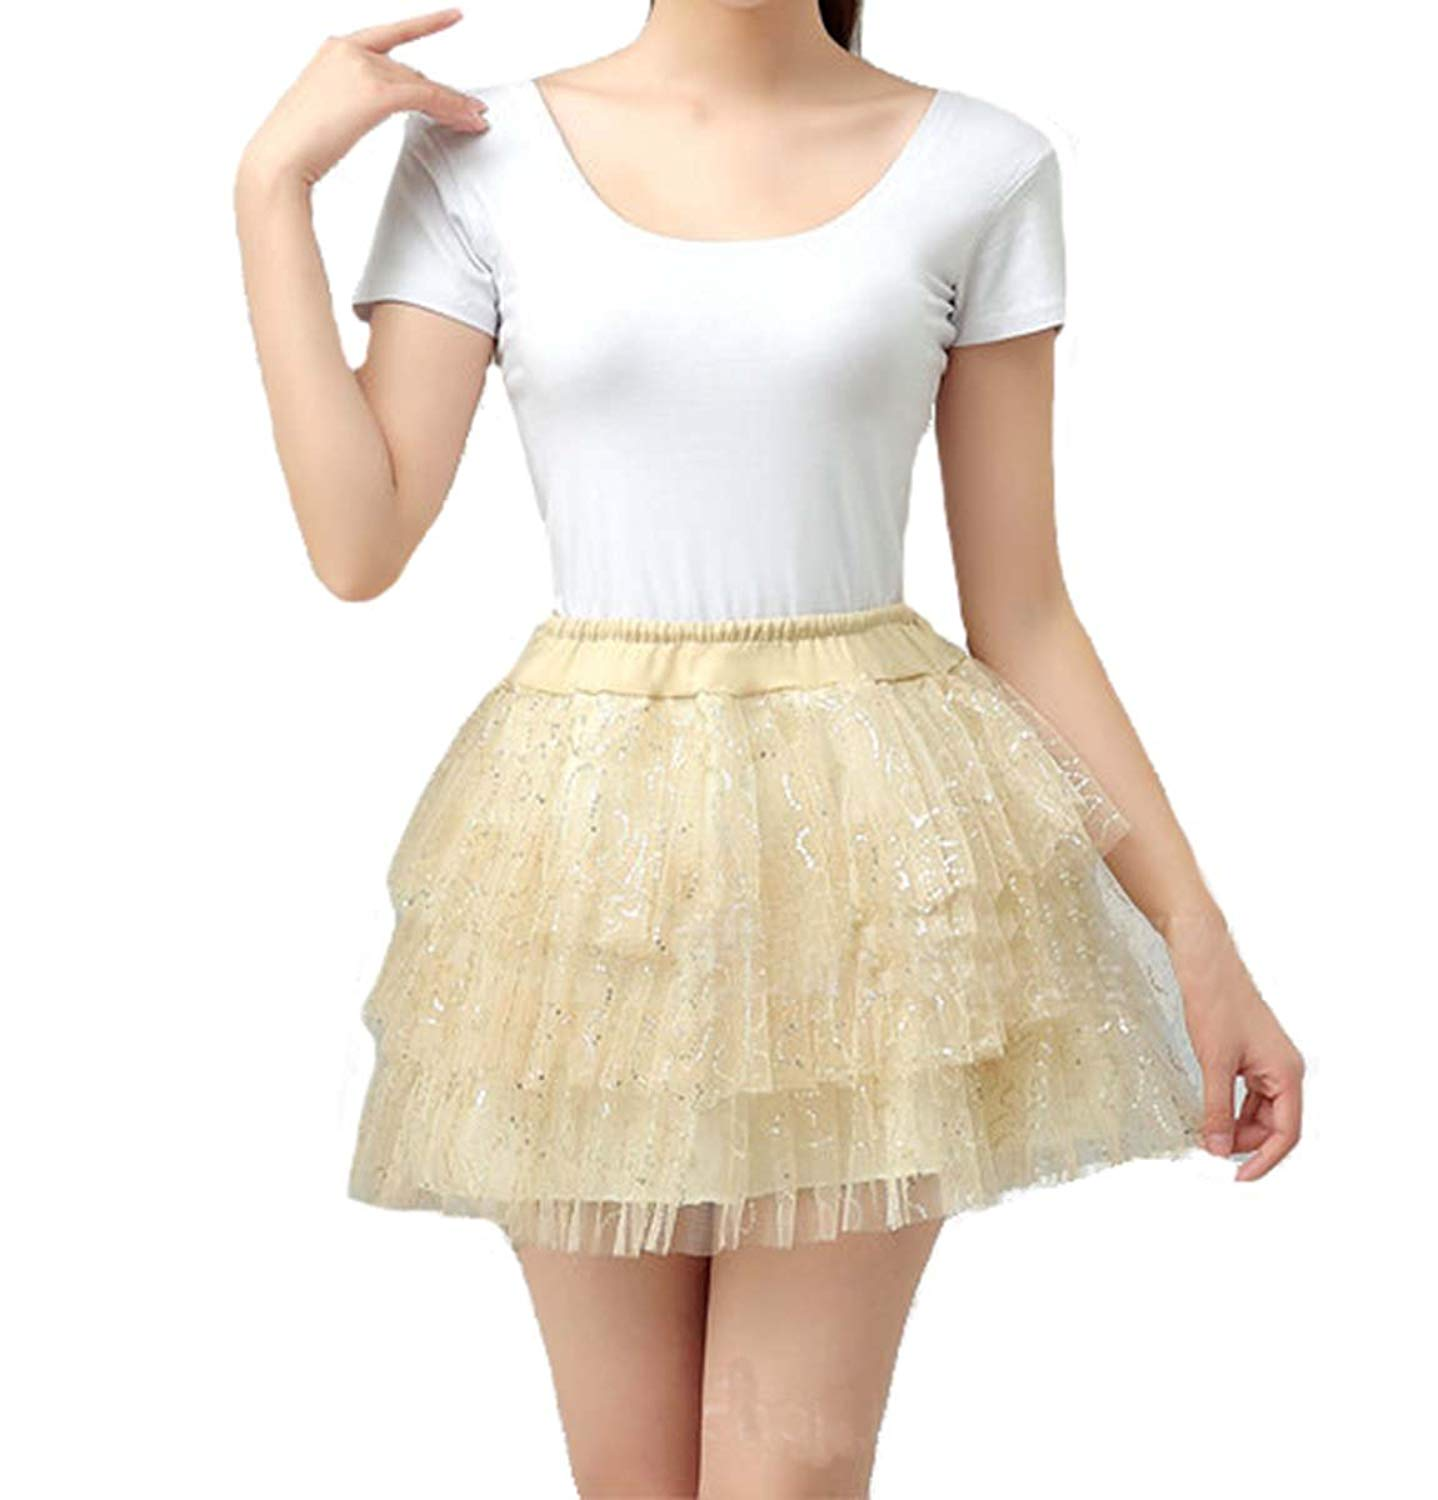 V.C.Formark Tutu Skirt Underskirt Puffy Full Lace Tulle Skirt For Girls Slip